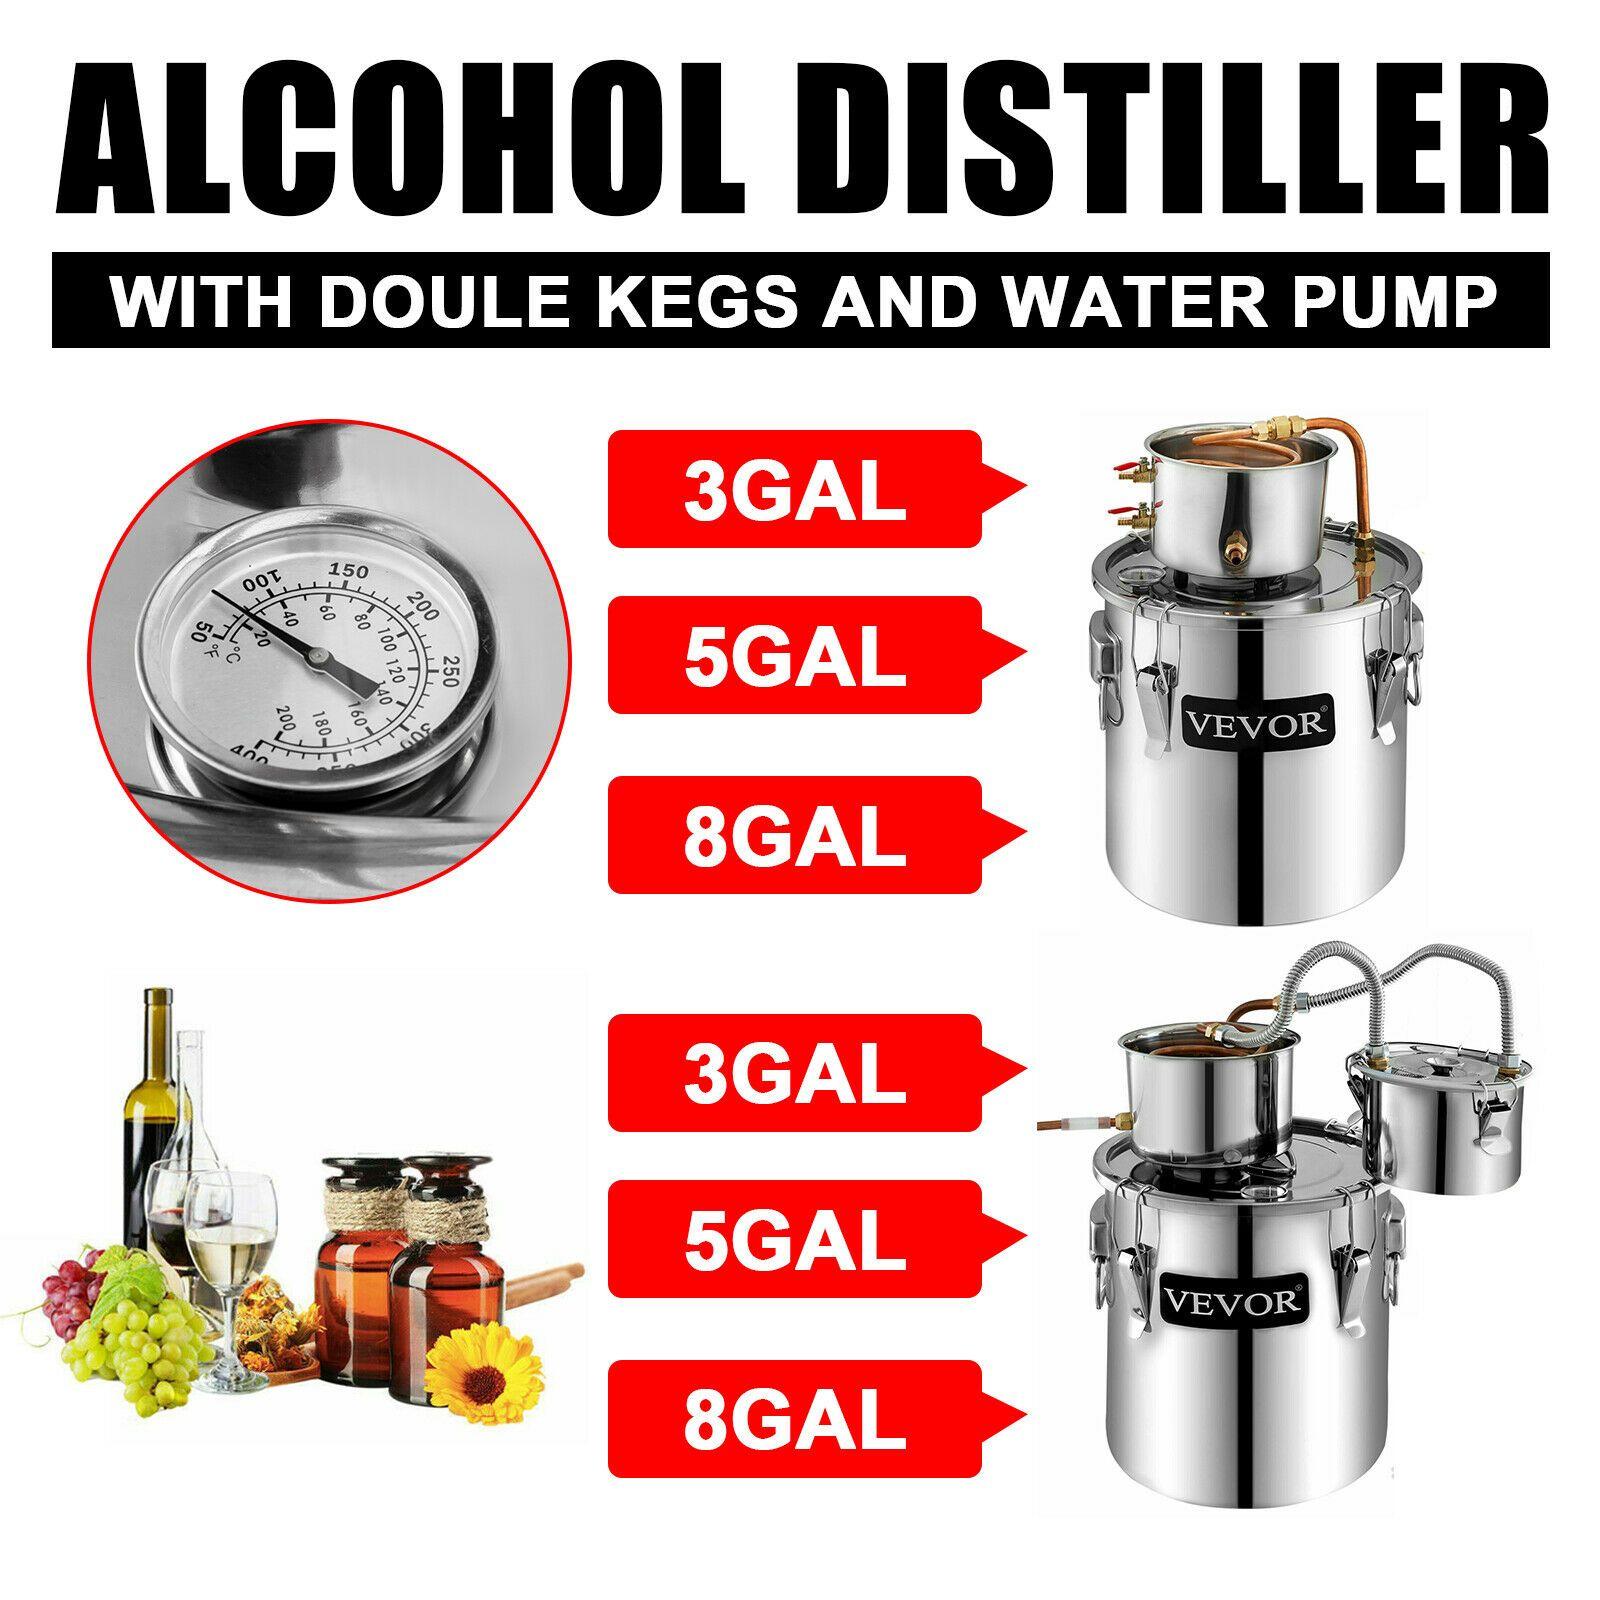 3 5 10 Gallon Wine Alcohol Water Distiller Moonshine Still Boiler High Quality 125 09 Wine Ideas Of Wine Wi In 2020 Moonshine Still Wine Making Kits Wine Making